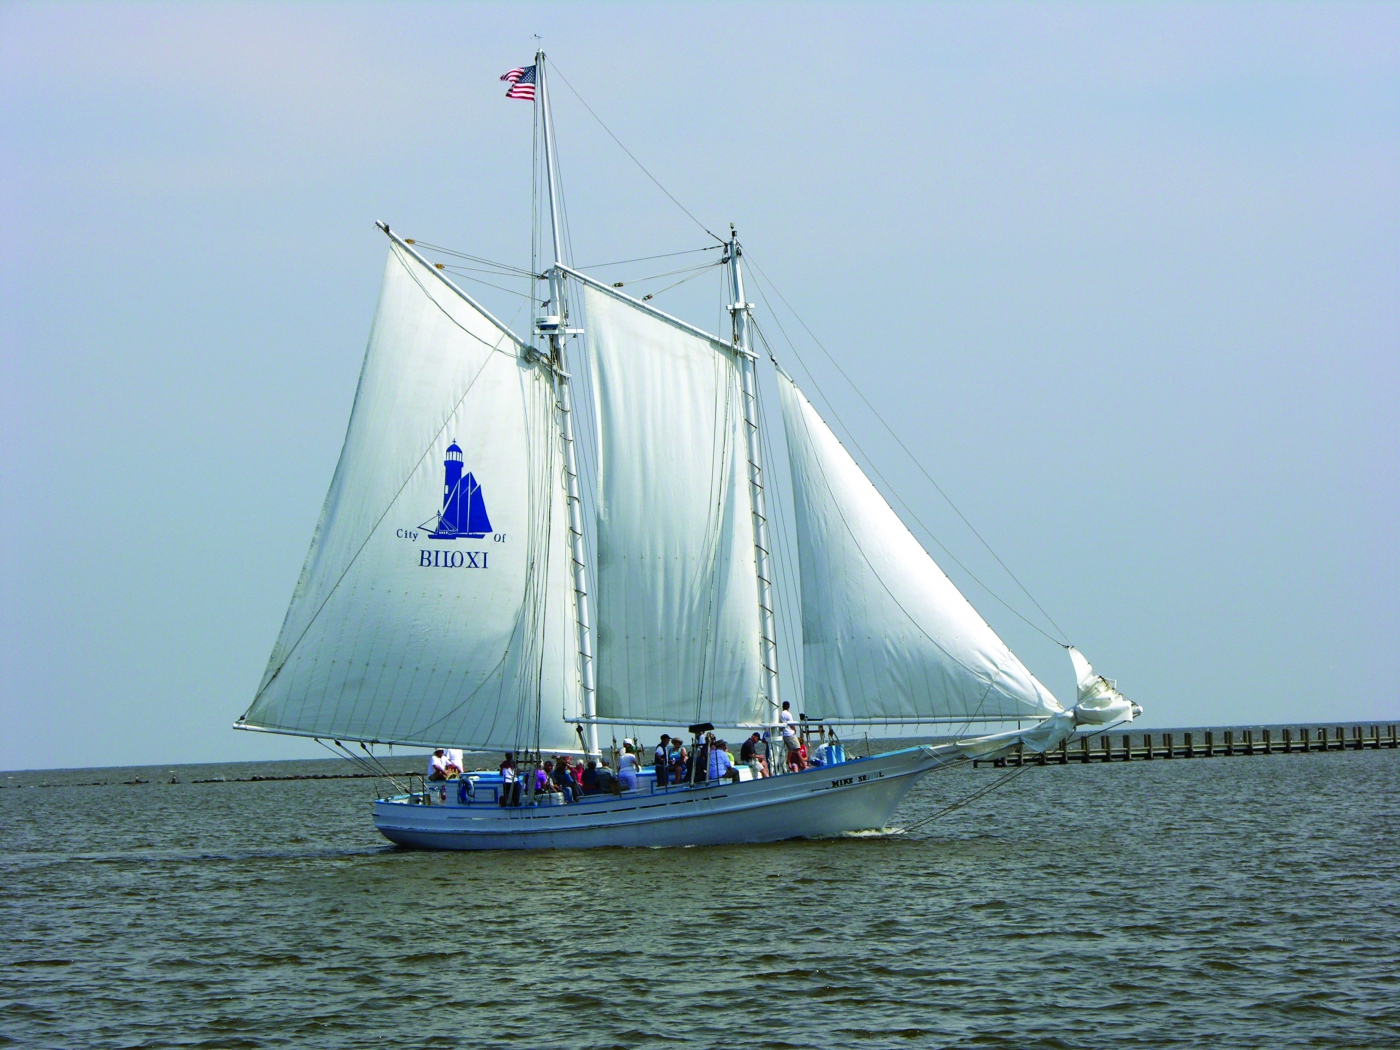 Biloxi Schooner isn't just a great place to eat, there are plenty that still appear off the coast.